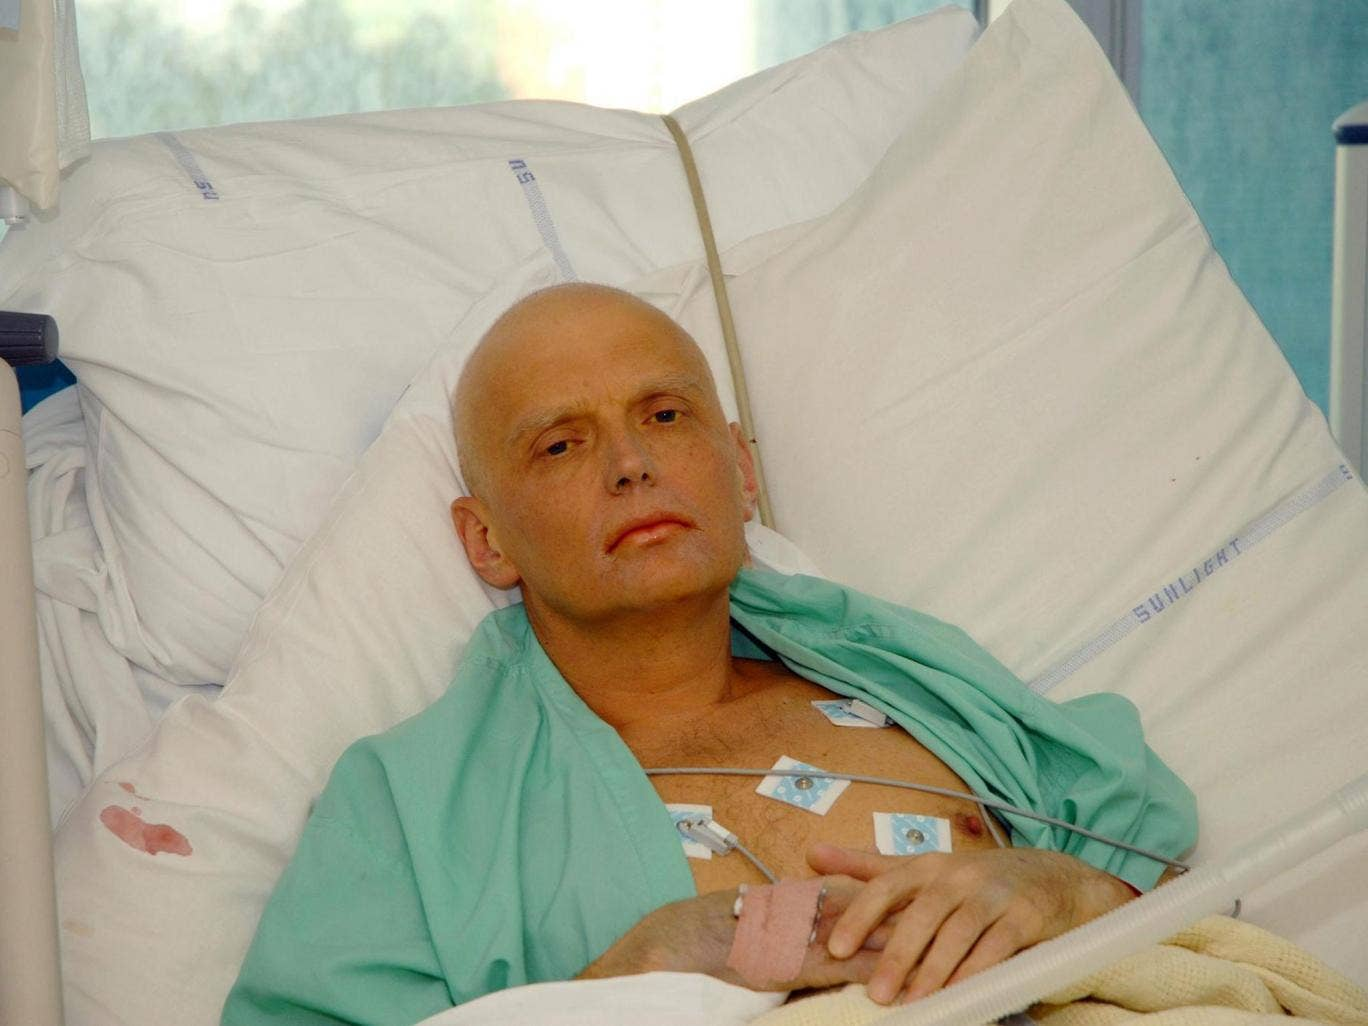 Alexander Litvinenko: The former KGB agent died from polonium-210 poisoning in 2006